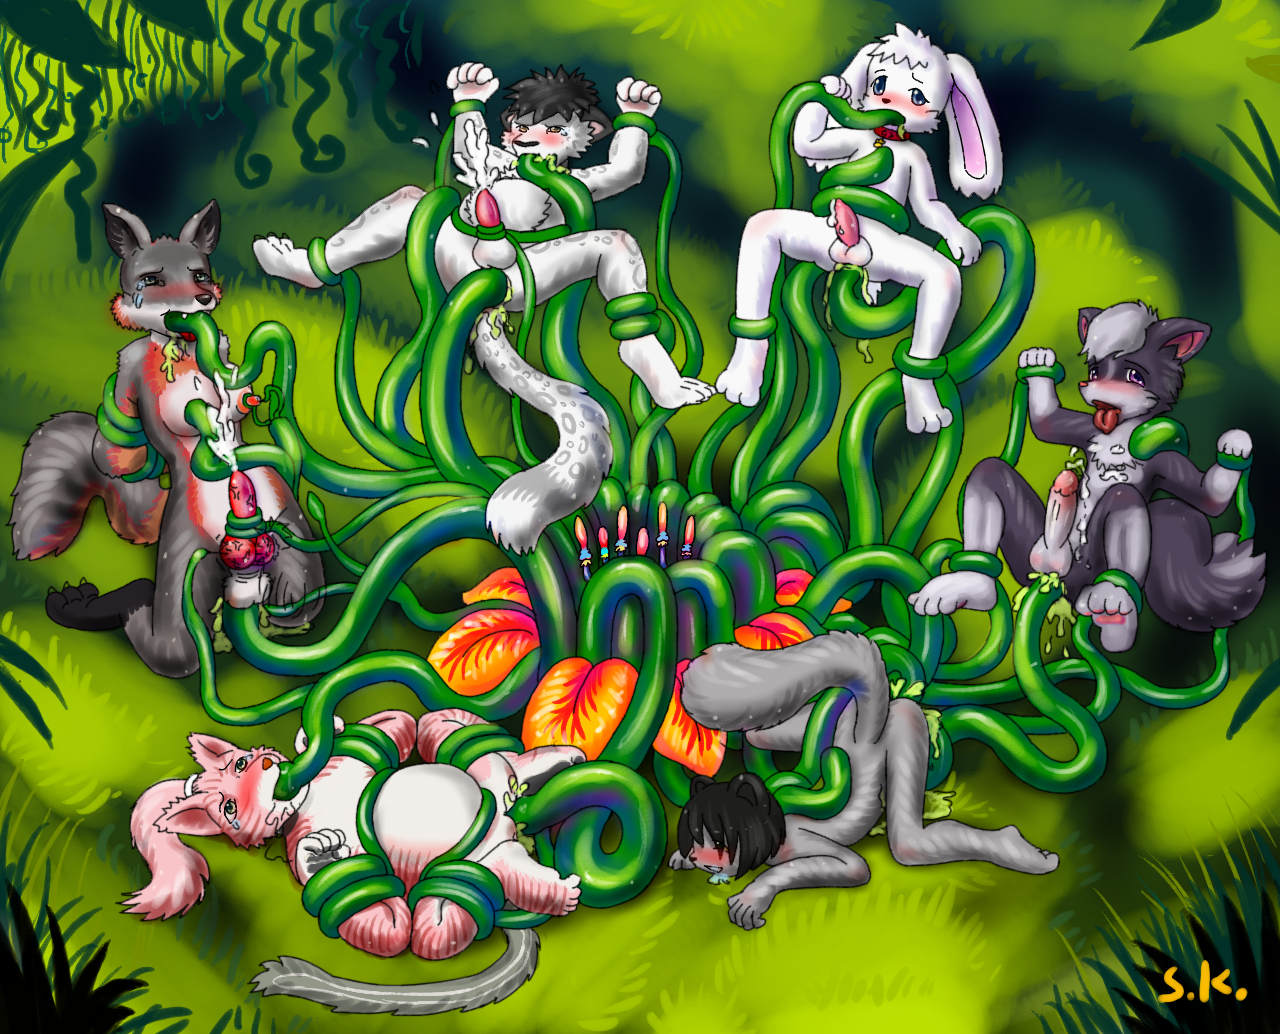 30651_supremekitten_tentacle_orgy_001f2_color6